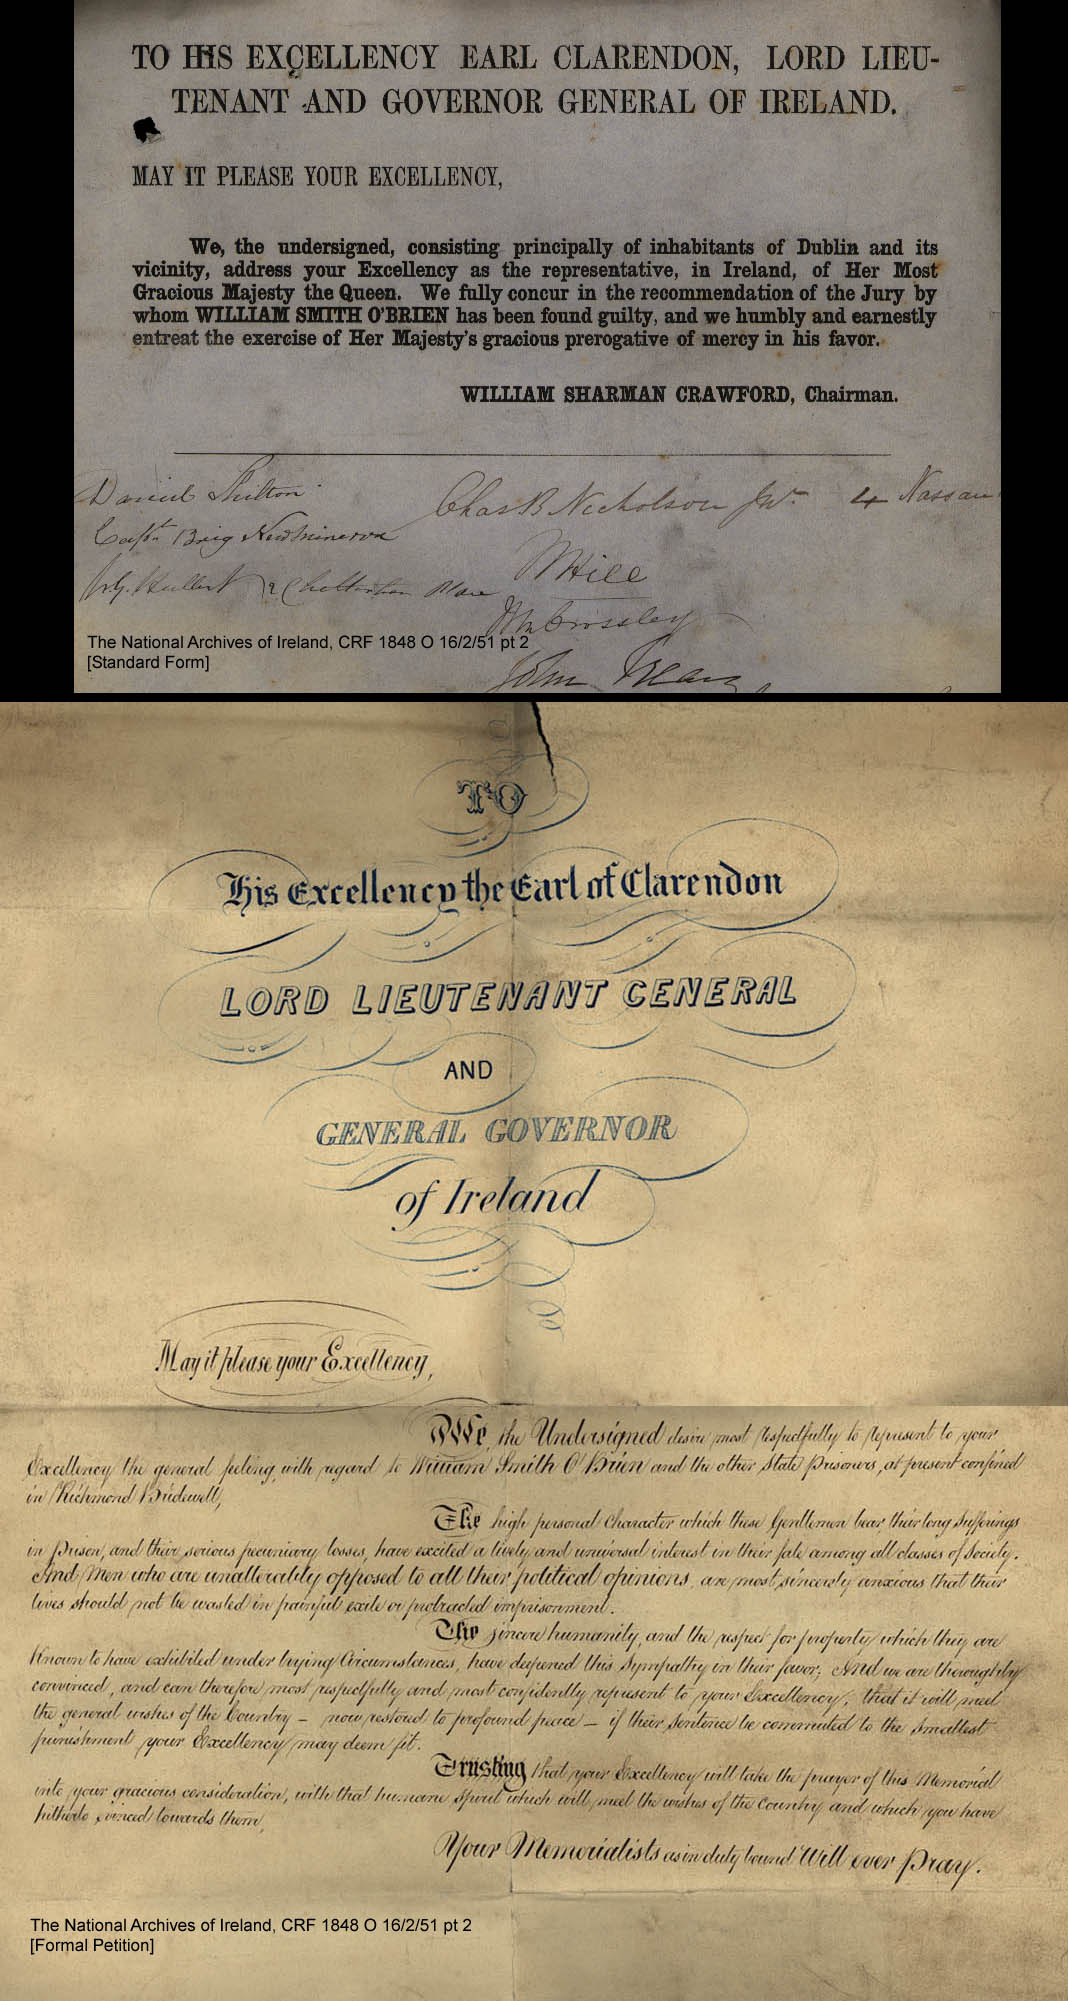 C:\Users\Virginia Rundle\Documents\Ancestry\Cranwill Kilpatrick Files\James Kilpatrick signed Earl Clarendon plea 1849.jpg